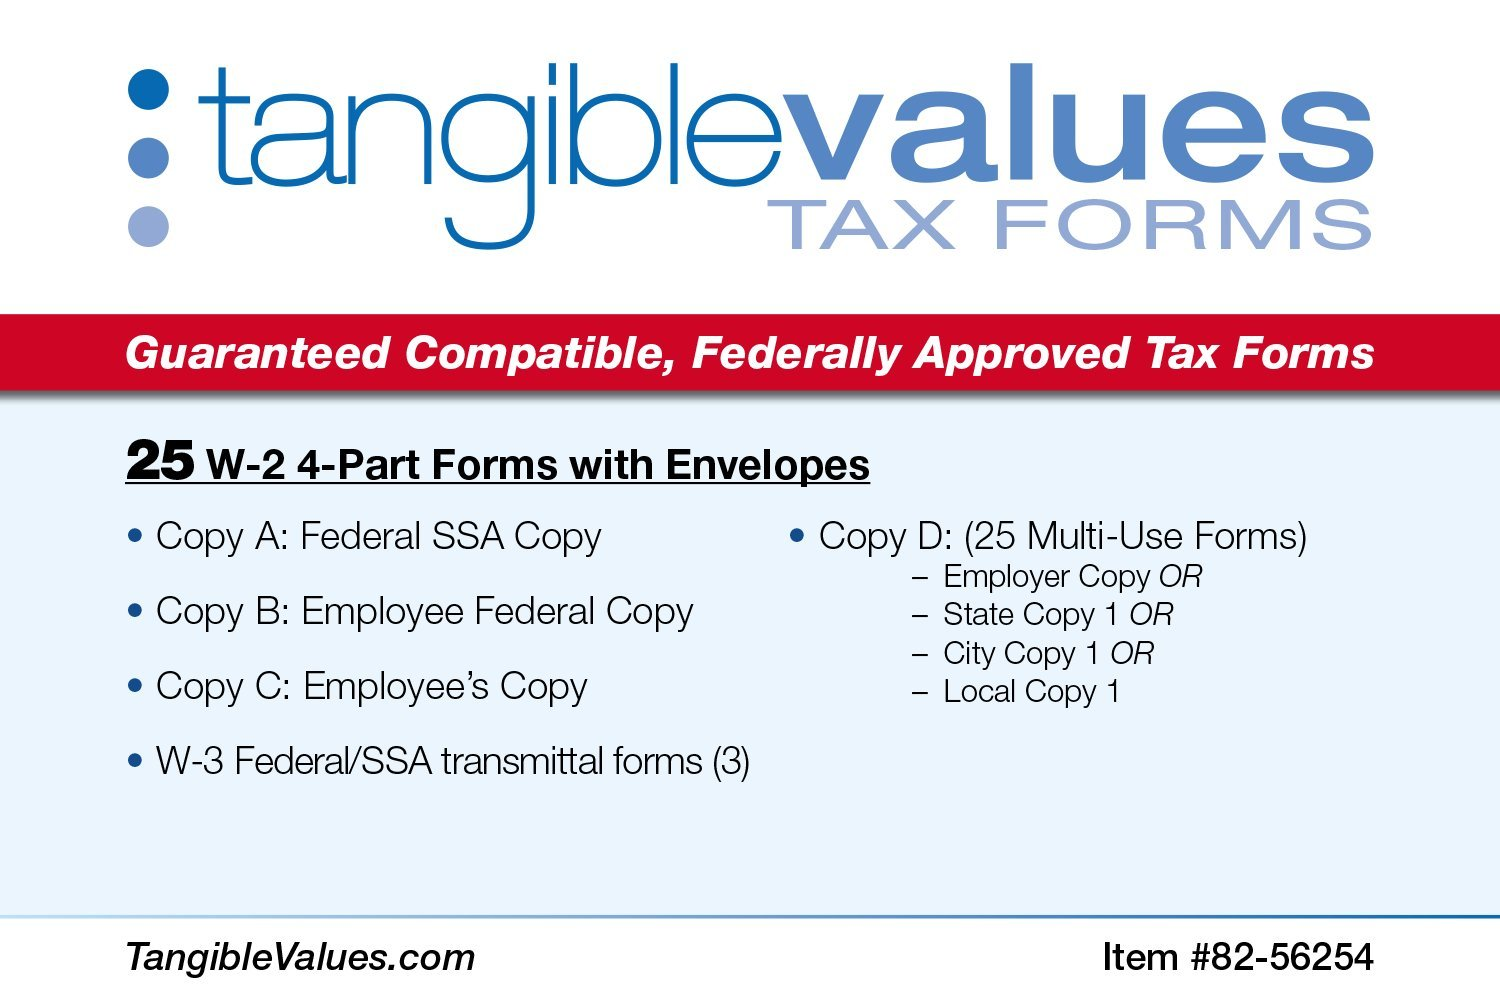 Amazon.com : Tangible Values W-2 Laser Forms (4-Part) Kit with ...